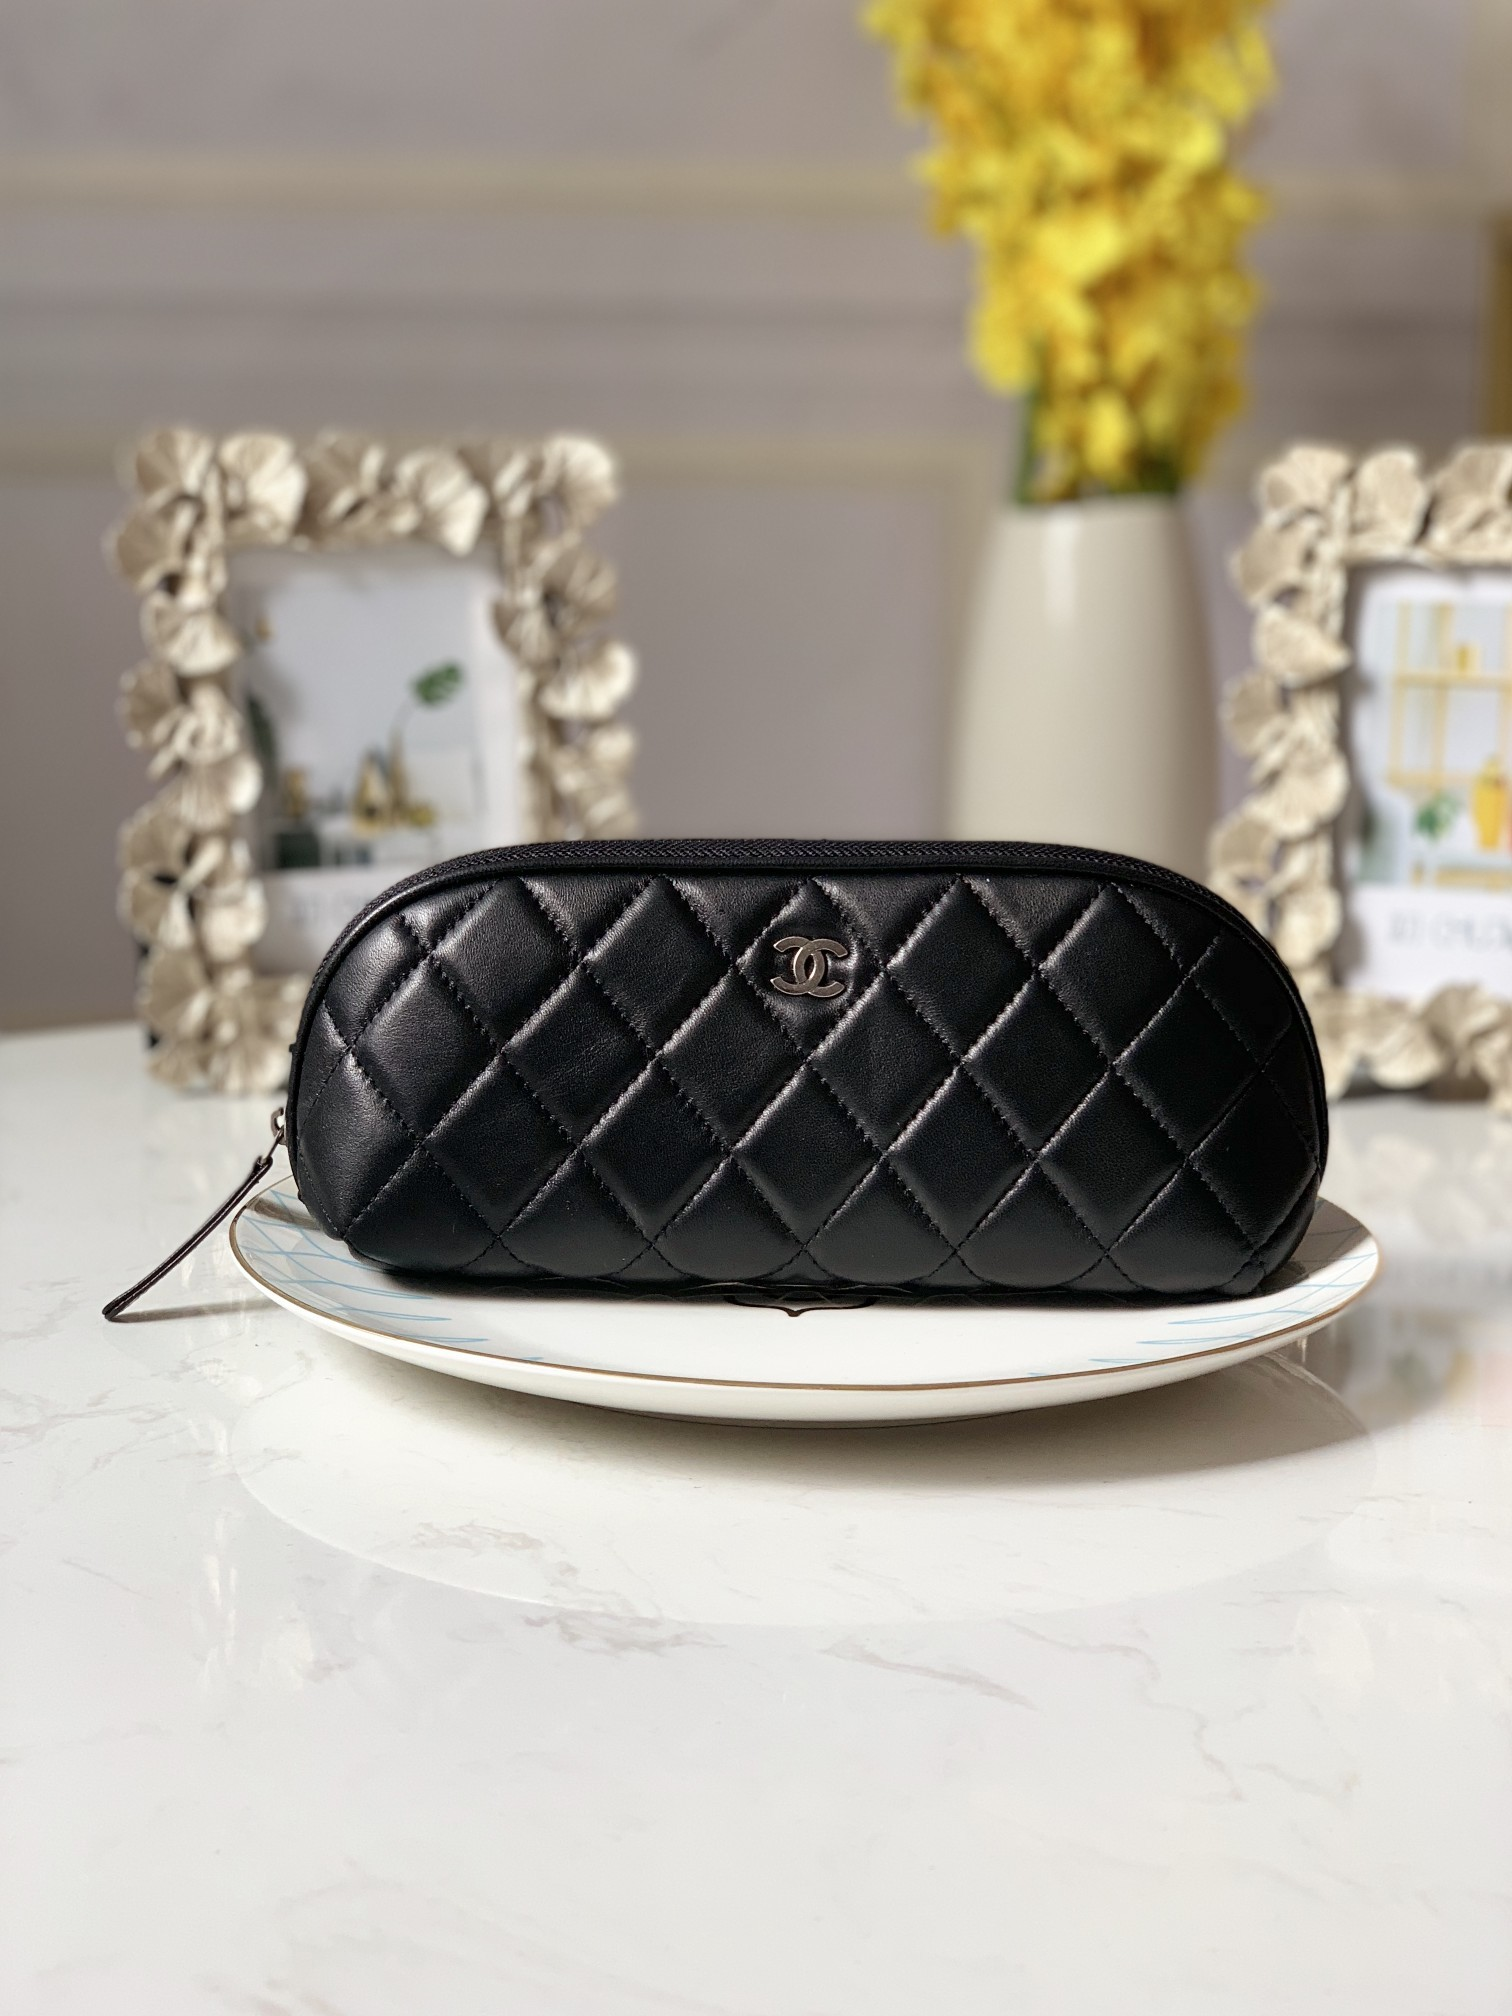 Replica Chanel Women Cosmetic Bag Black Leather